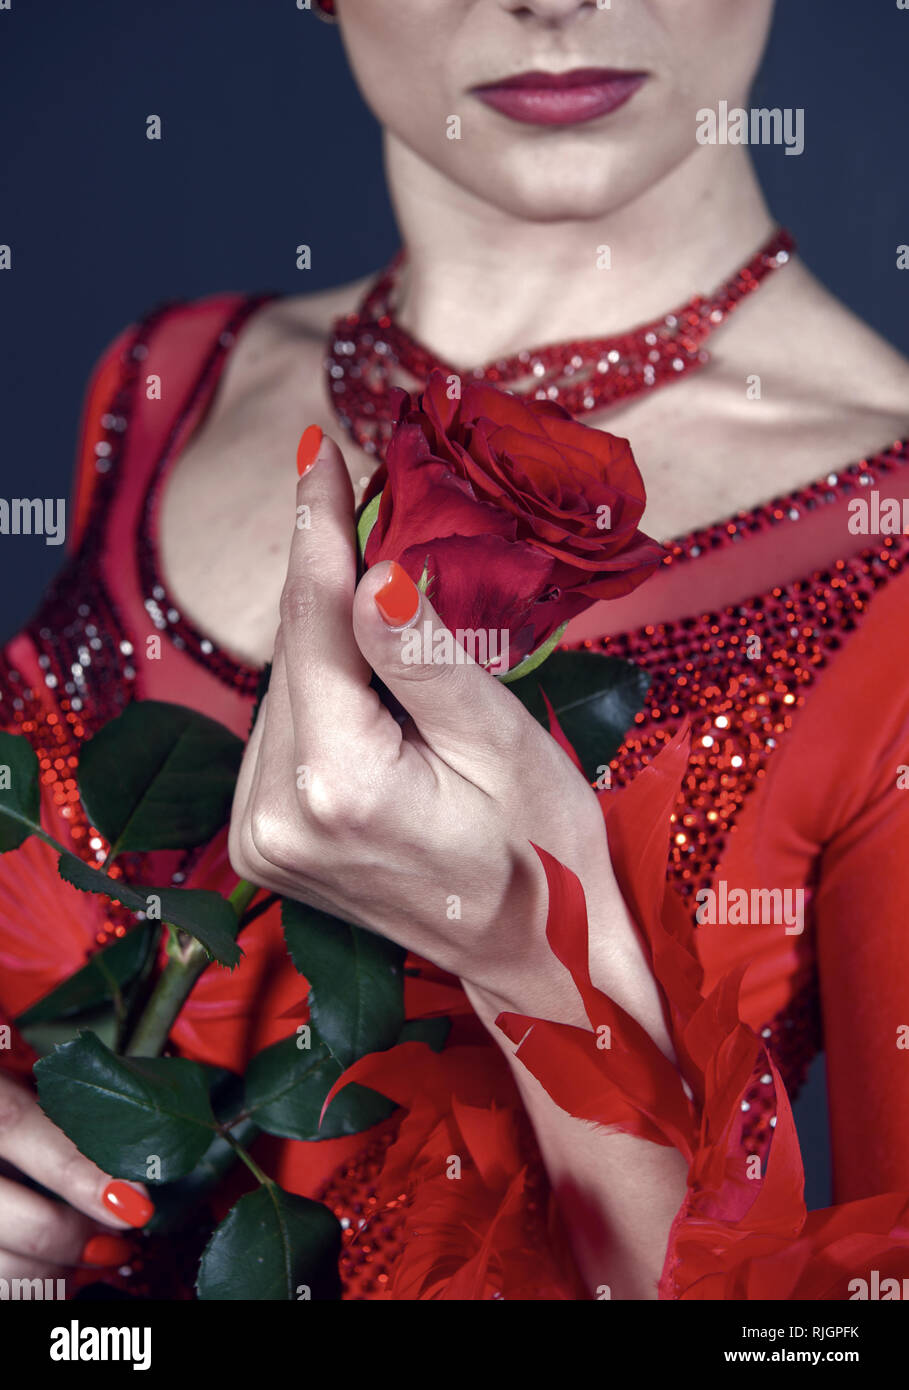 Rose flower in female hand on red dress. Love, desire, romance. Floristry, decor, design, floral shop. Womens day, 8 march spring Birthday anniversary holidays celebration - Stock Image